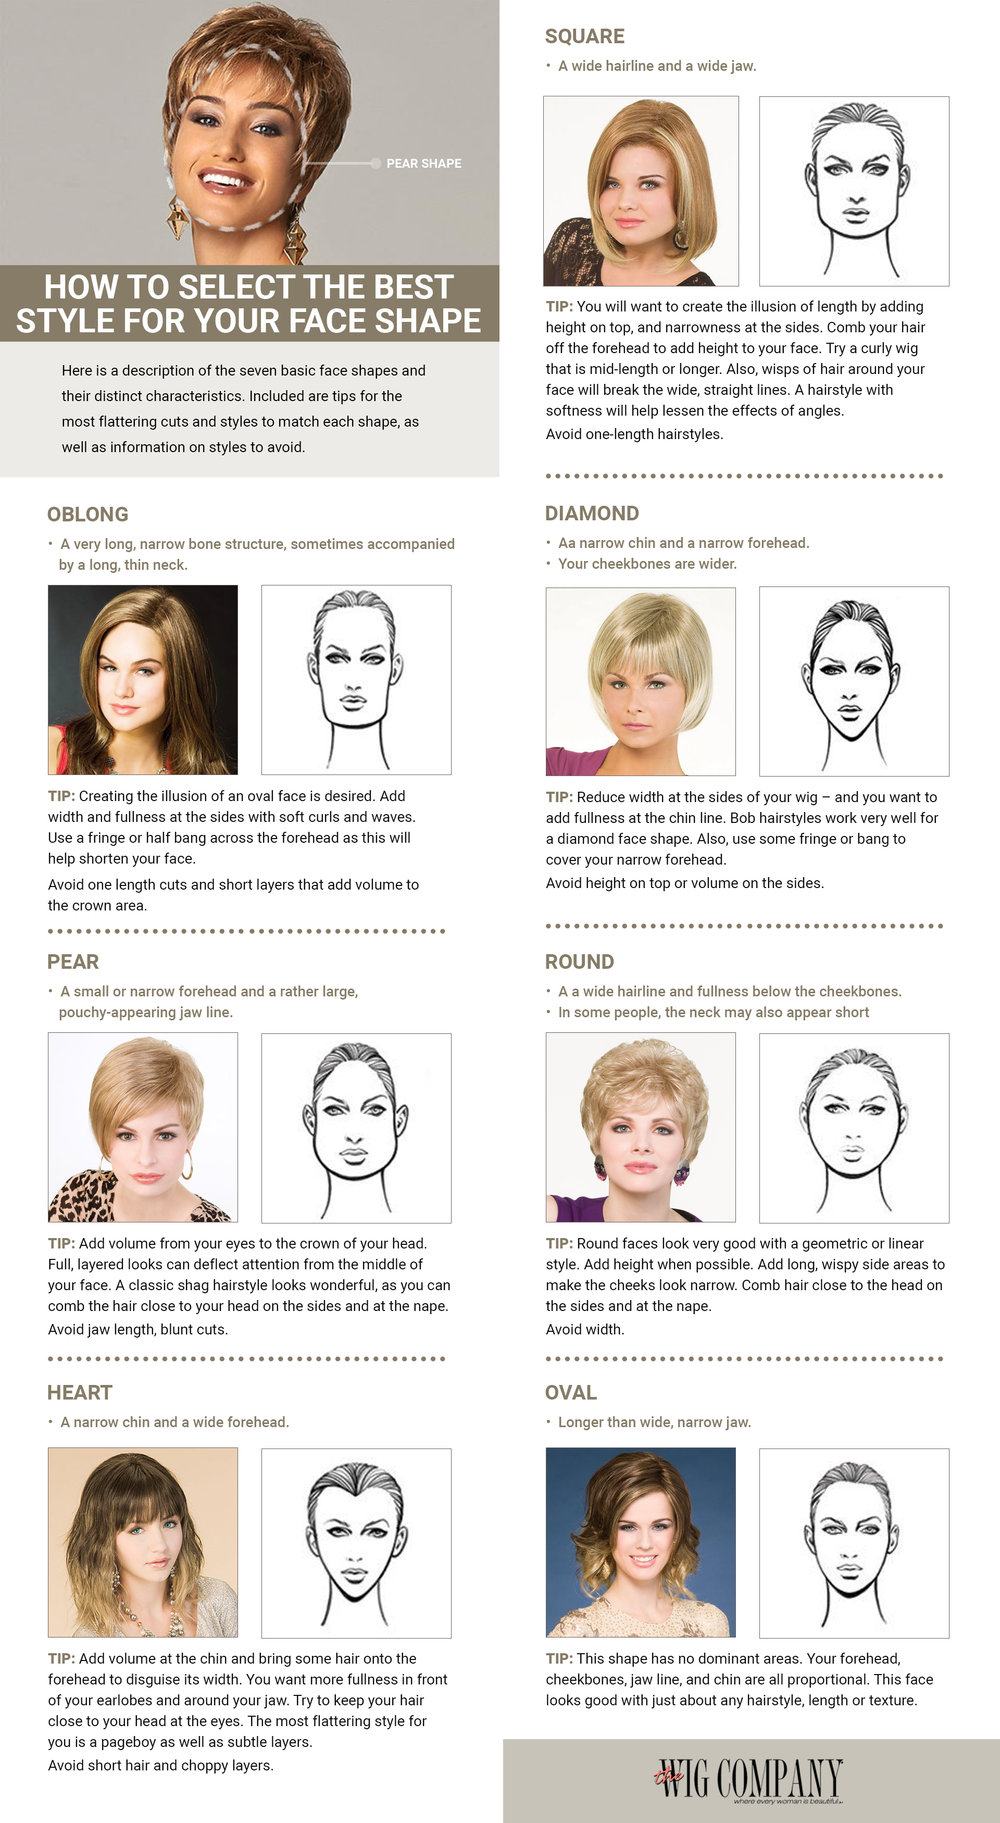 HD wallpapers best hair style for face shape